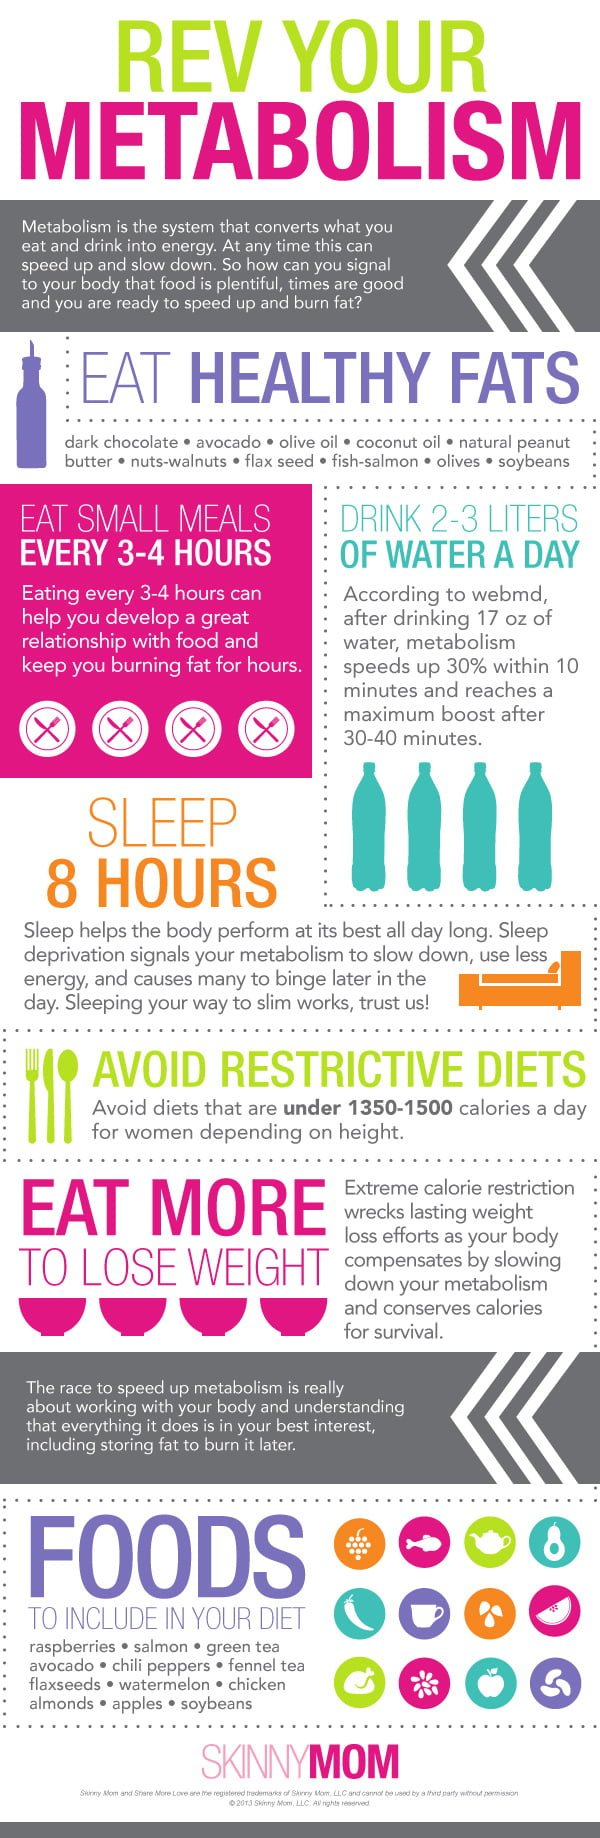 Boost Your Metabolism for Weight Loss Infographic